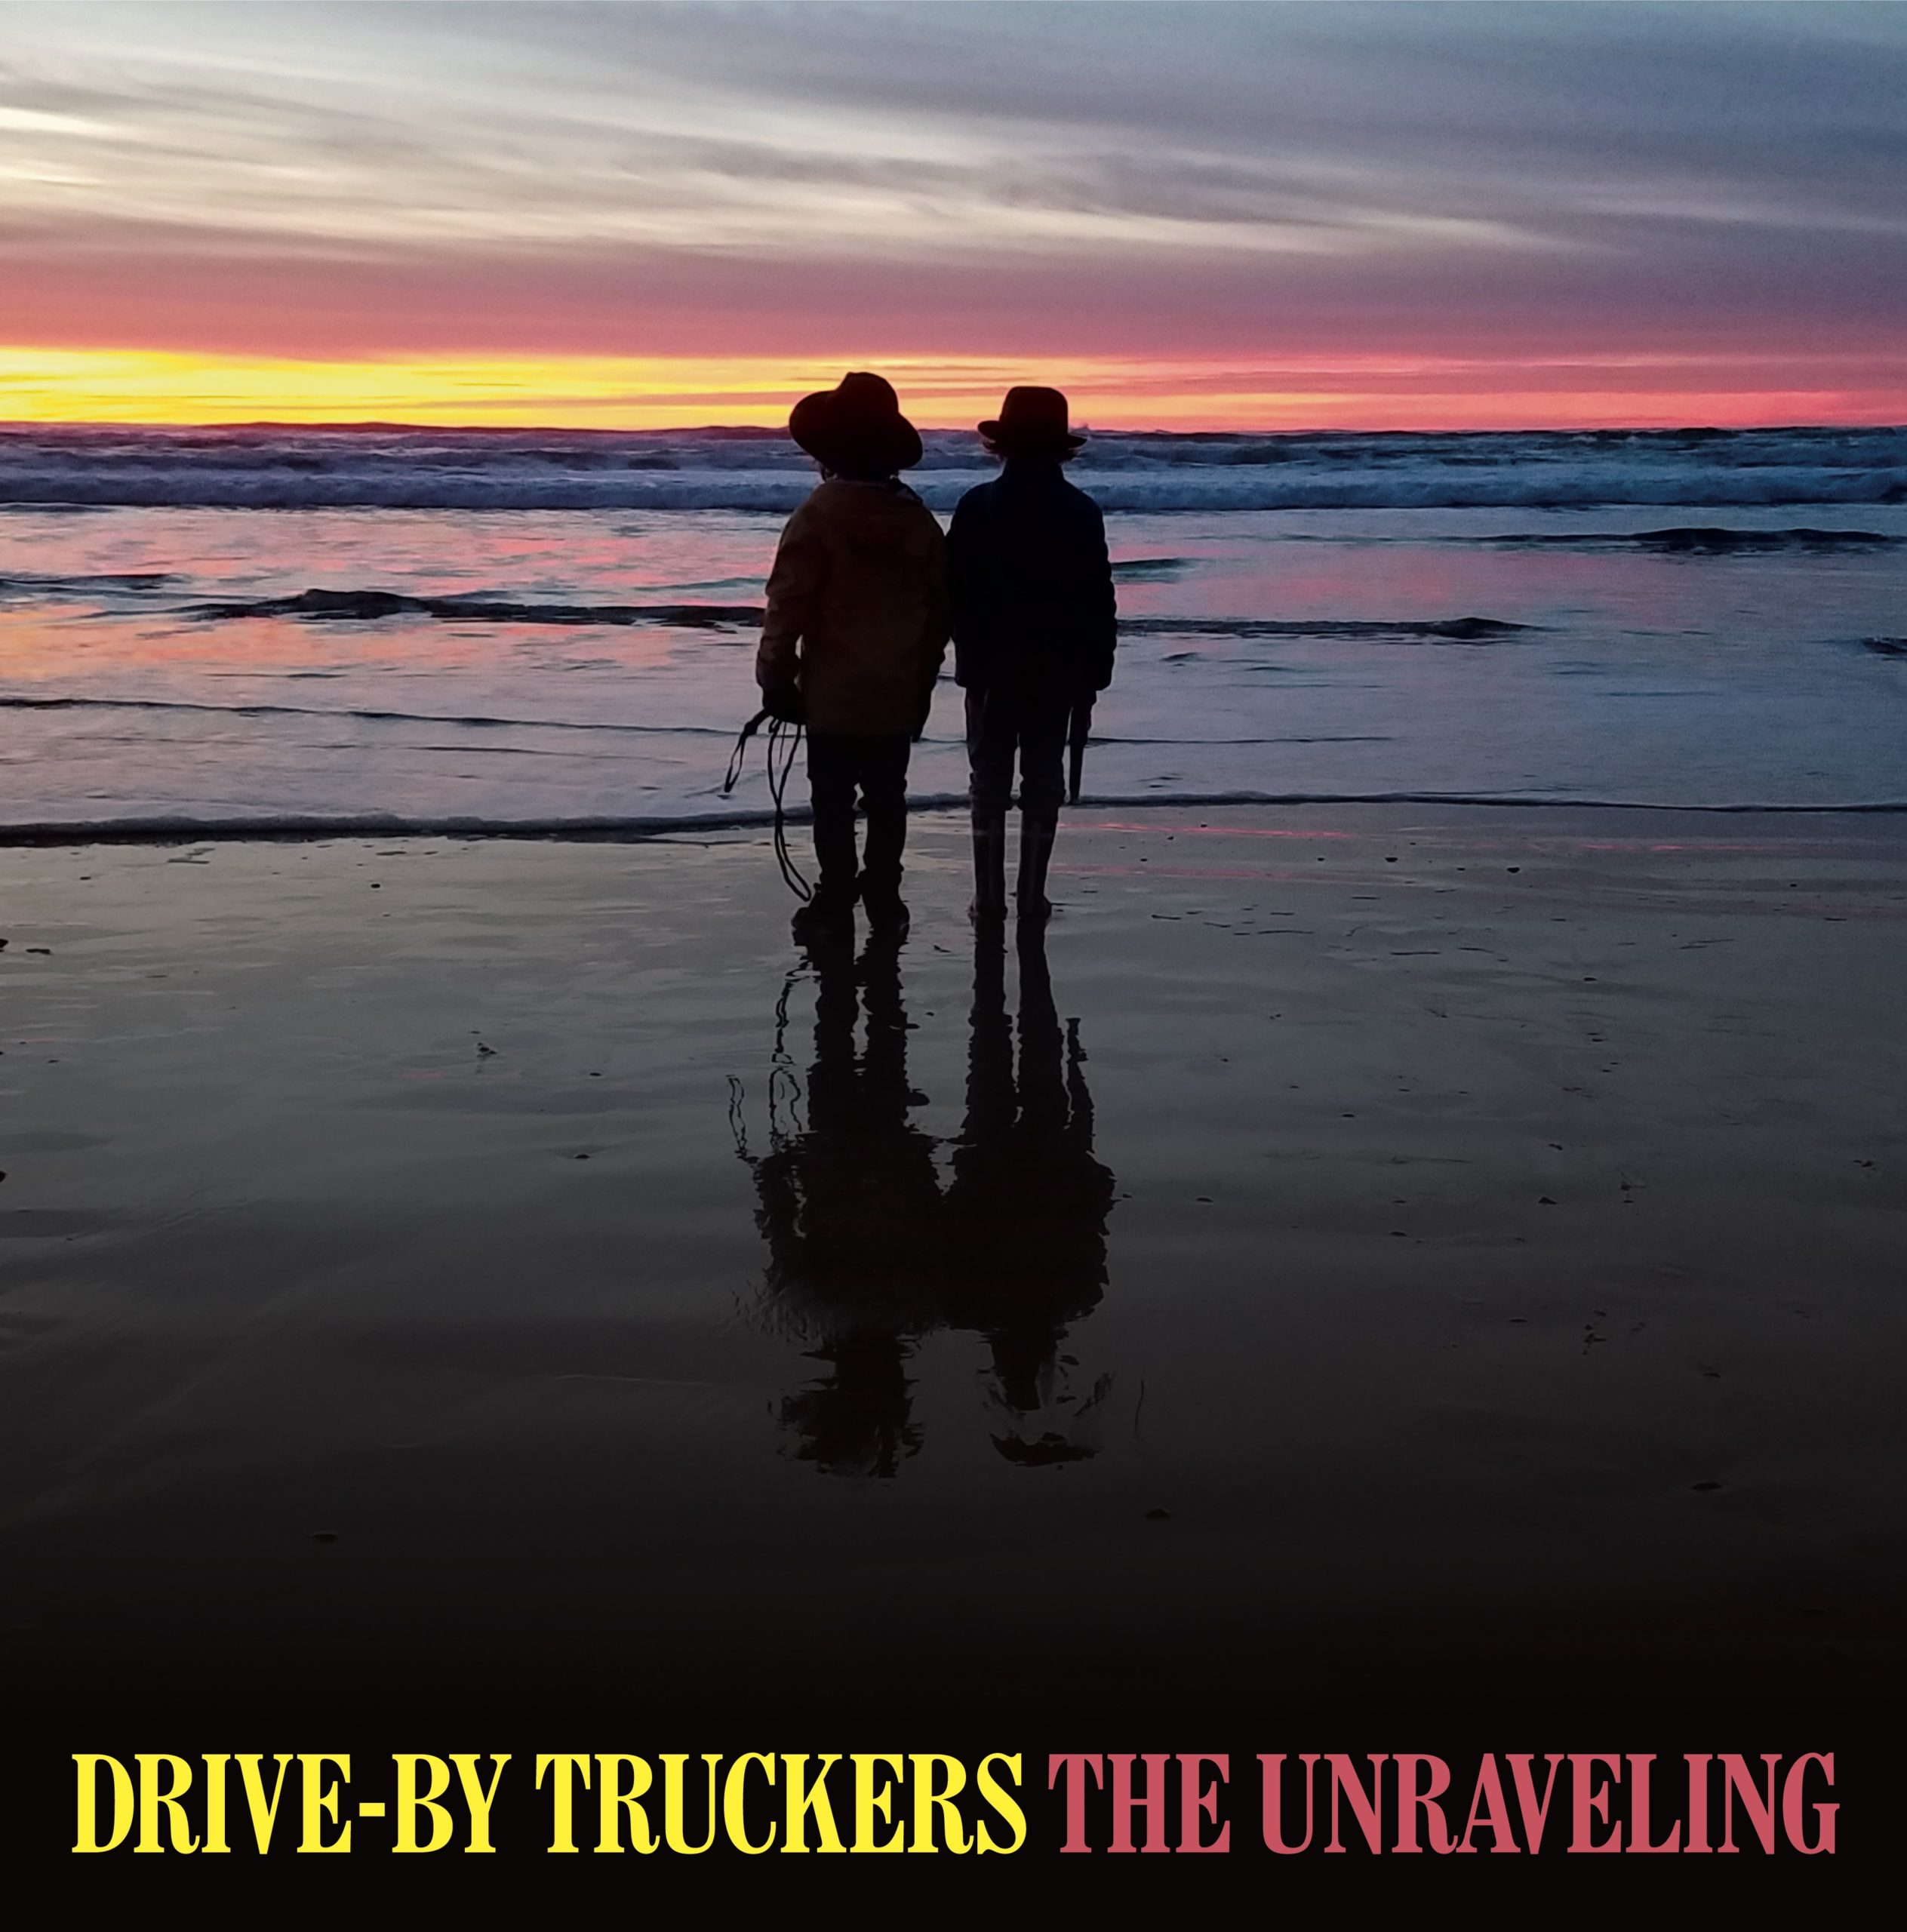 Drive By Truckers -The Unraveling (ATO Records)